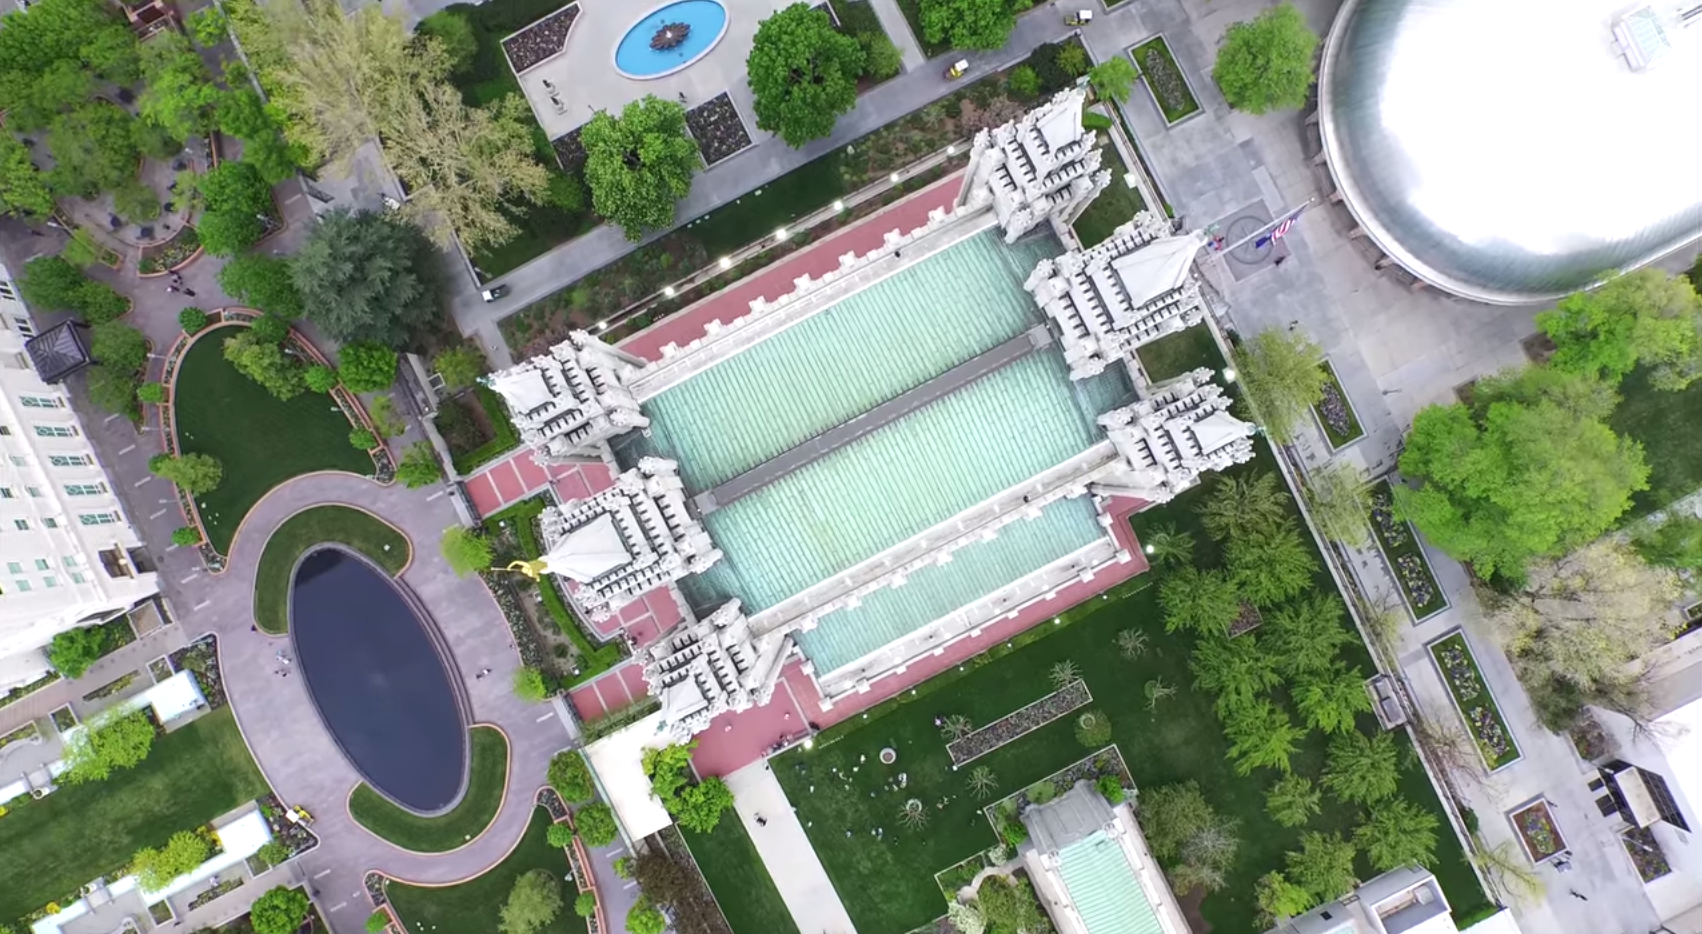 Awesome Drone Footage of Every Mormon Temple in Utah